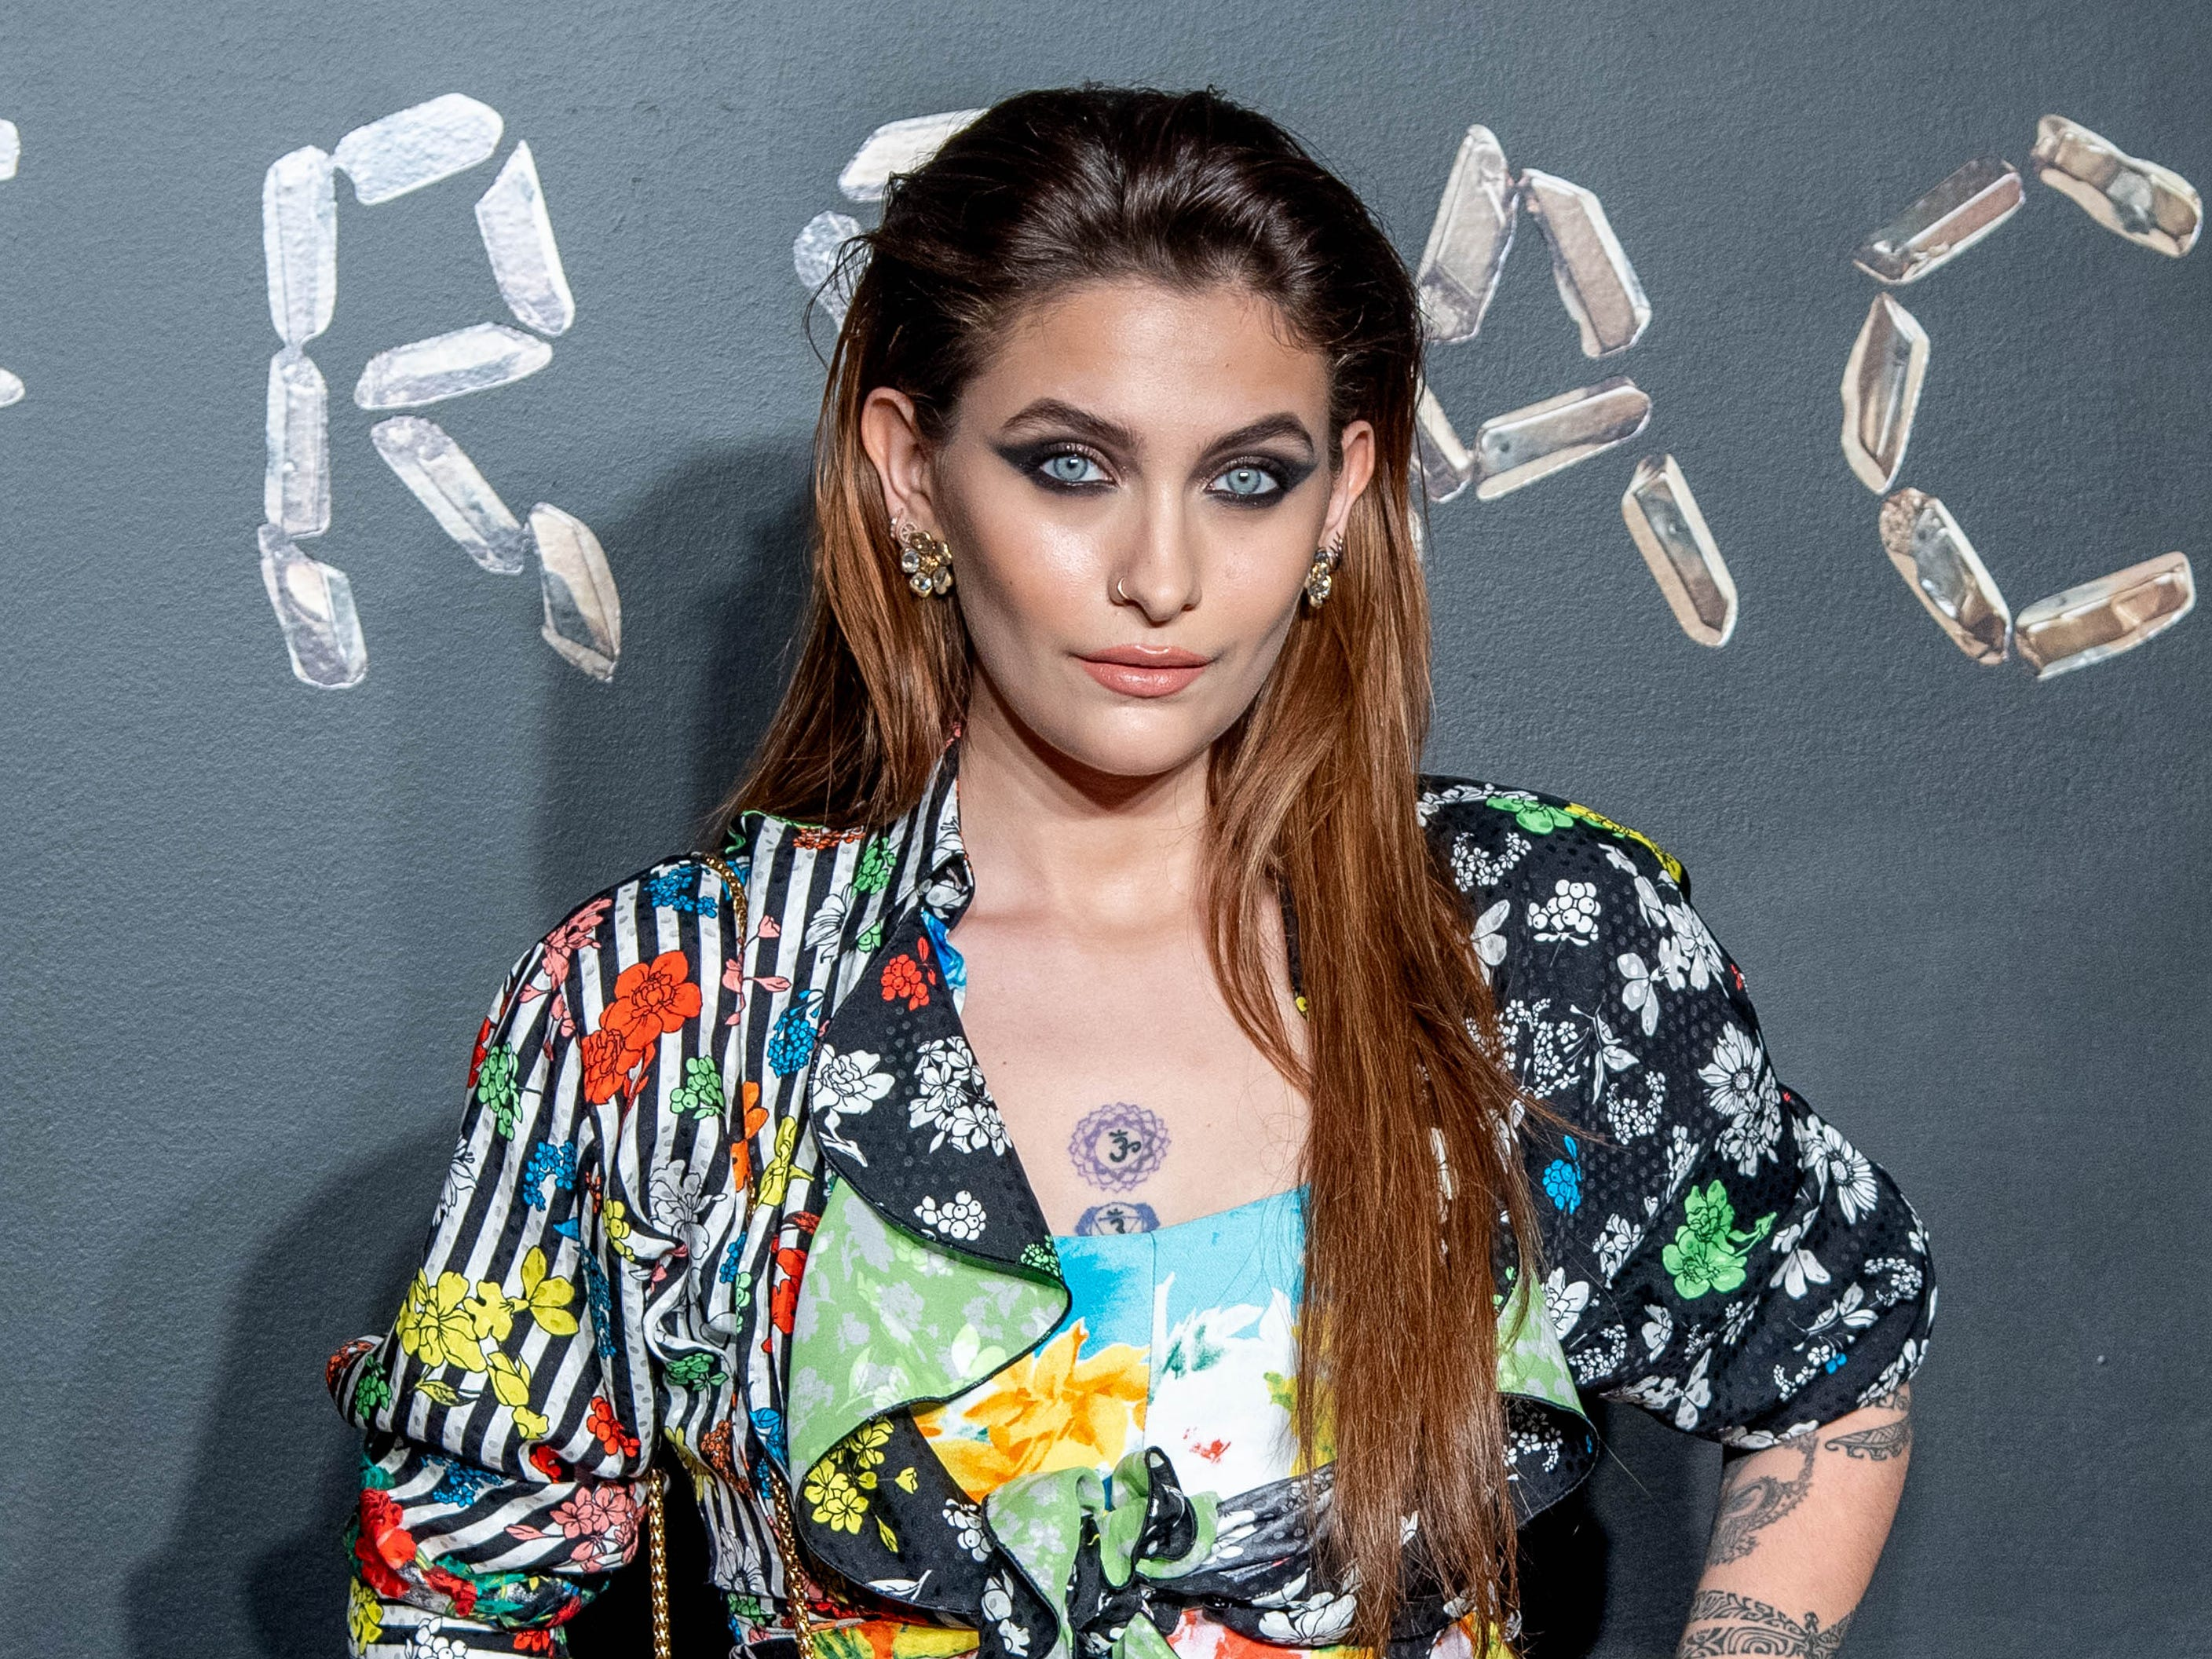 Paris Jackson attends a Versace fashion show on Dec. 2, 2018 in New York City.